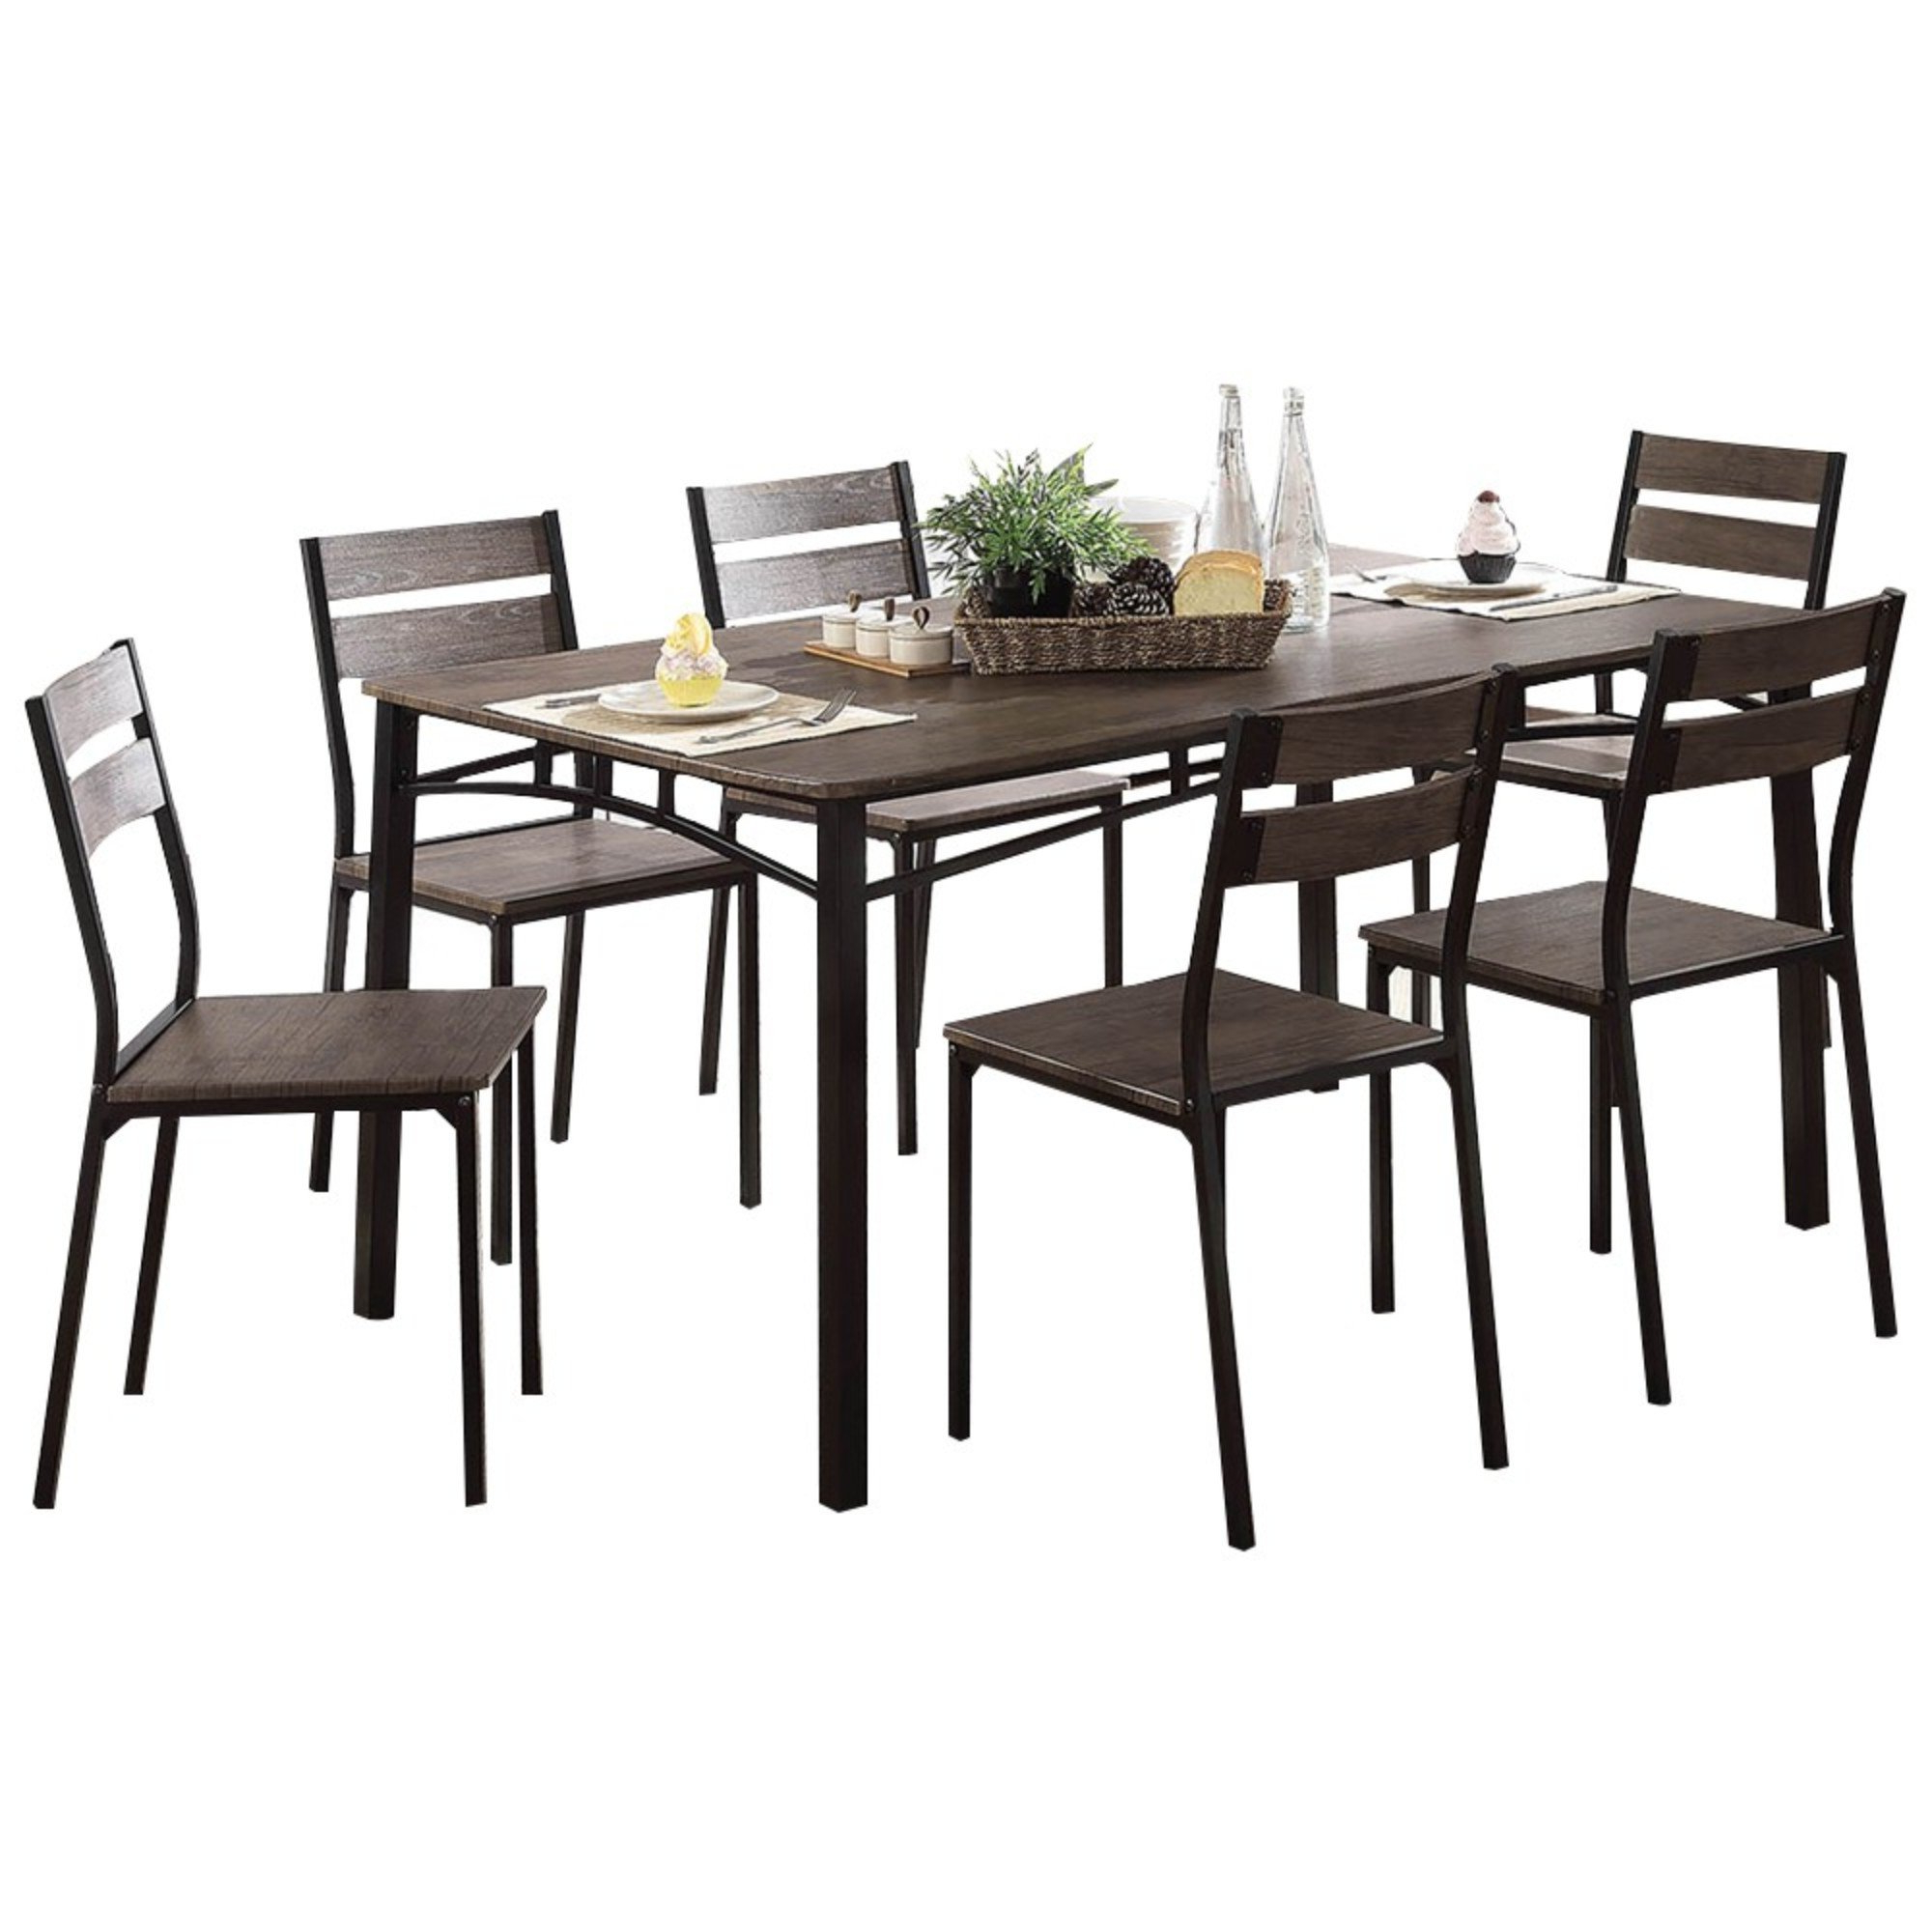 Brockway Wooden 7 Piece Counter Height Dining Table Set Regarding Most Recent Casiano 5 Piece Dining Sets (Gallery 18 of 20)